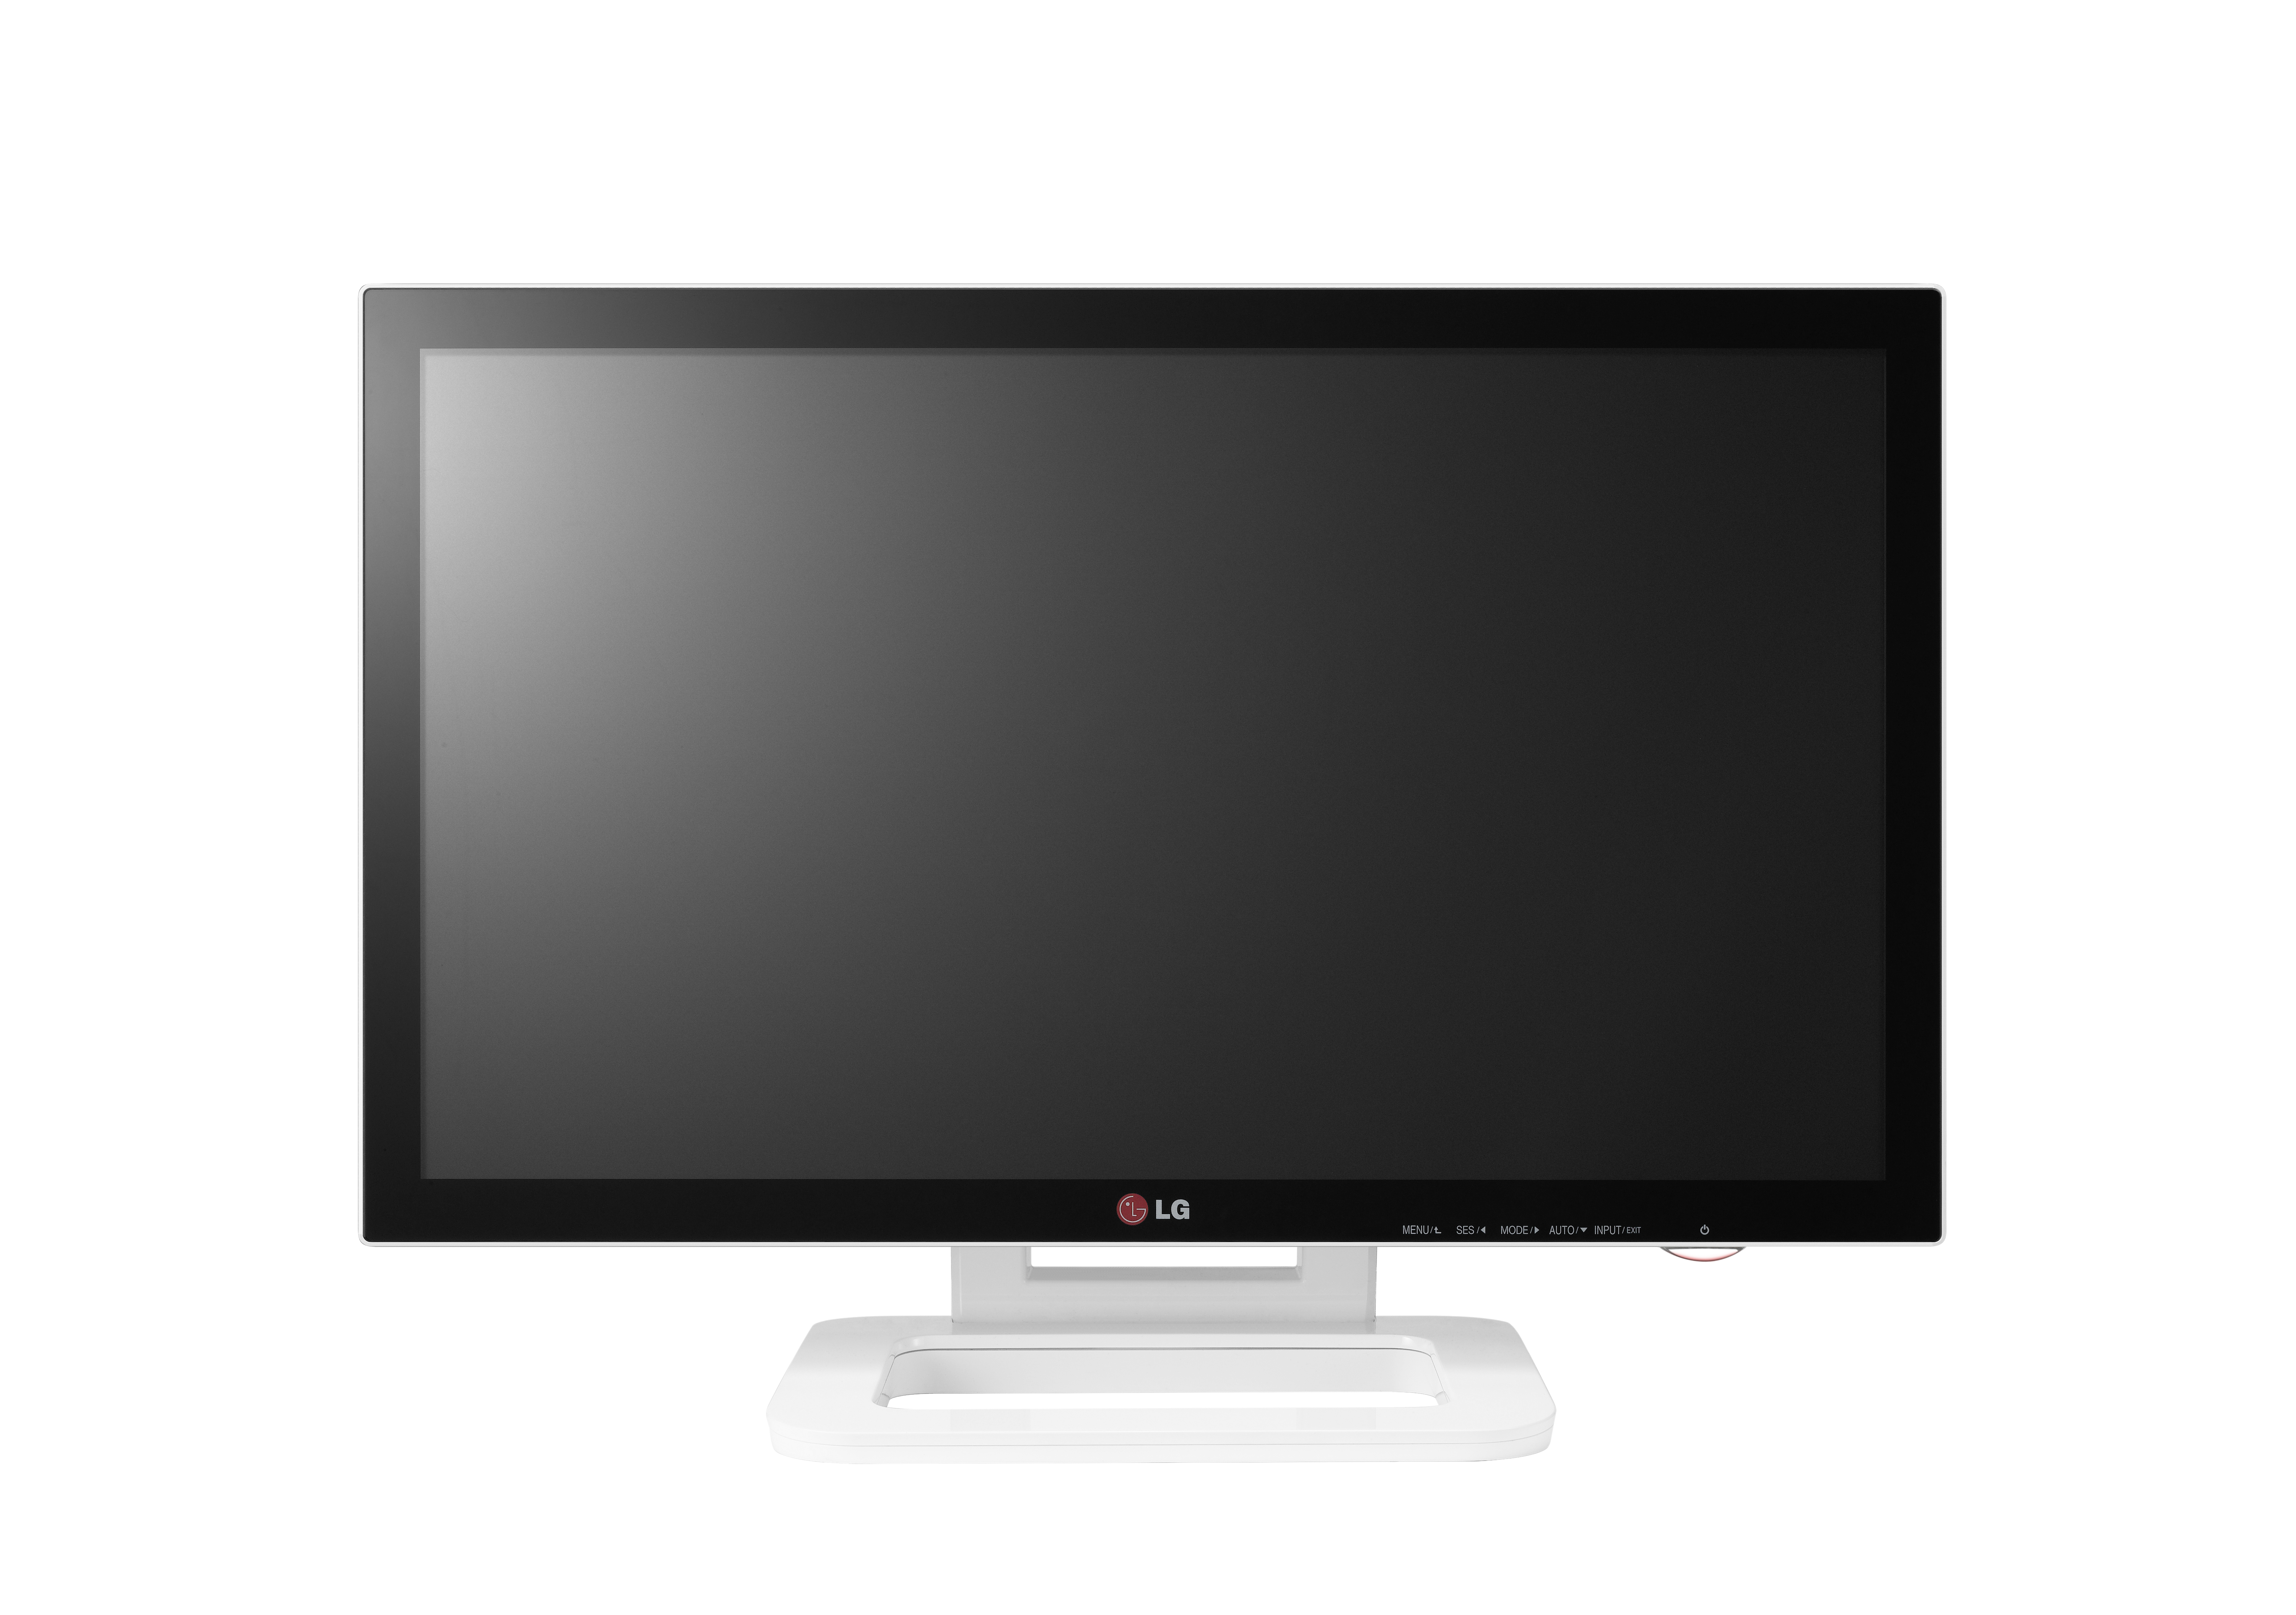 A front view of LG Touch 10 monitor model ET83